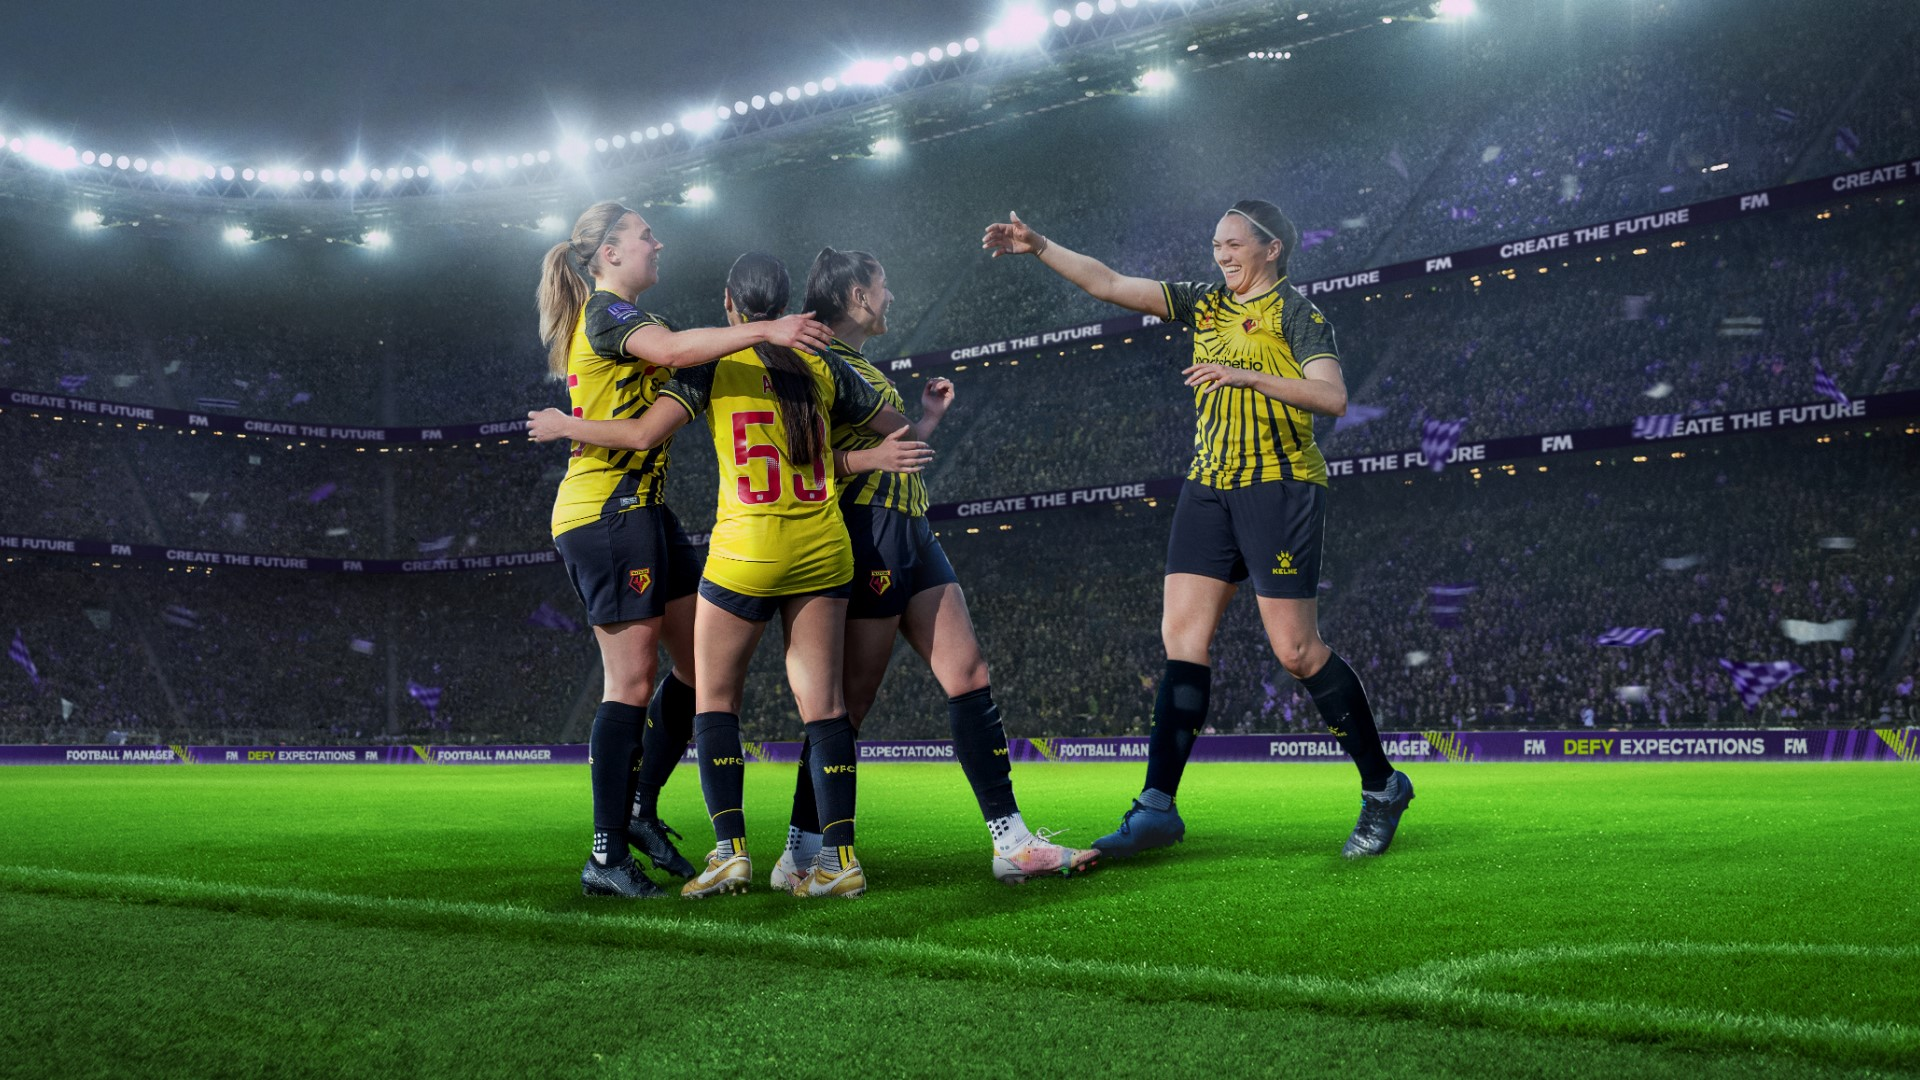 Football Manager will soon include women's football